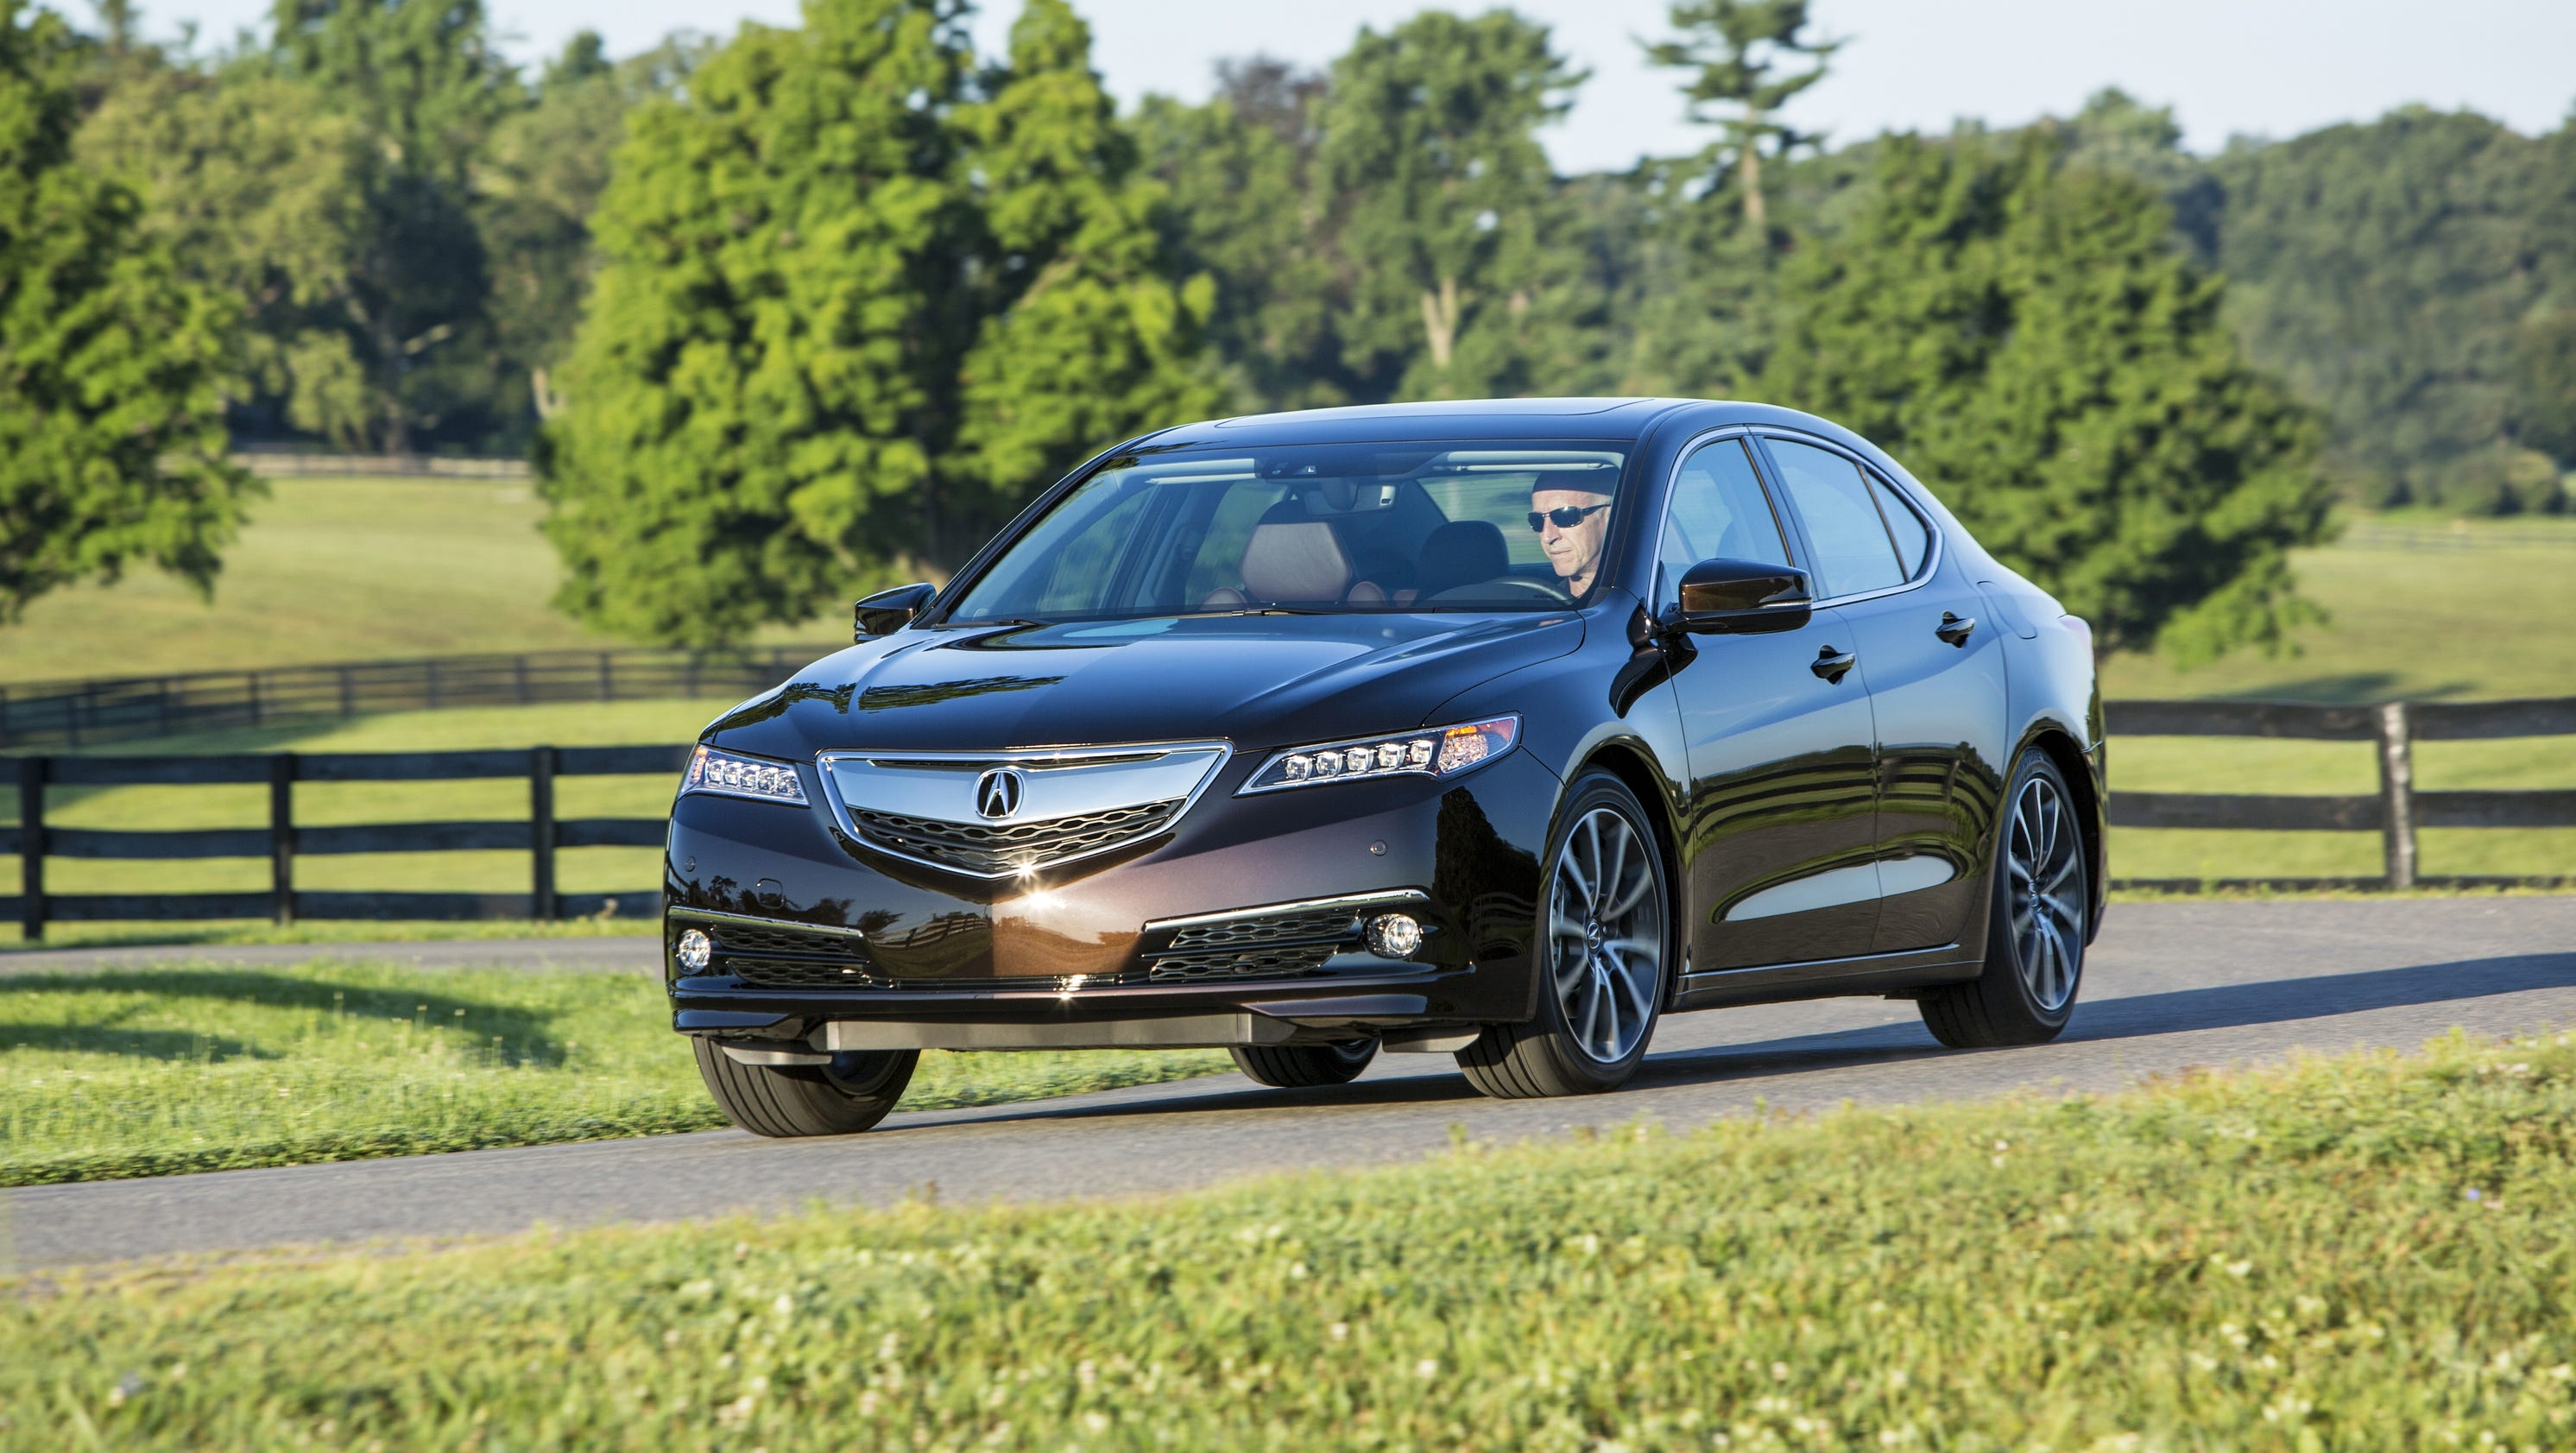 new tlx acura drive expert test our auto rsd